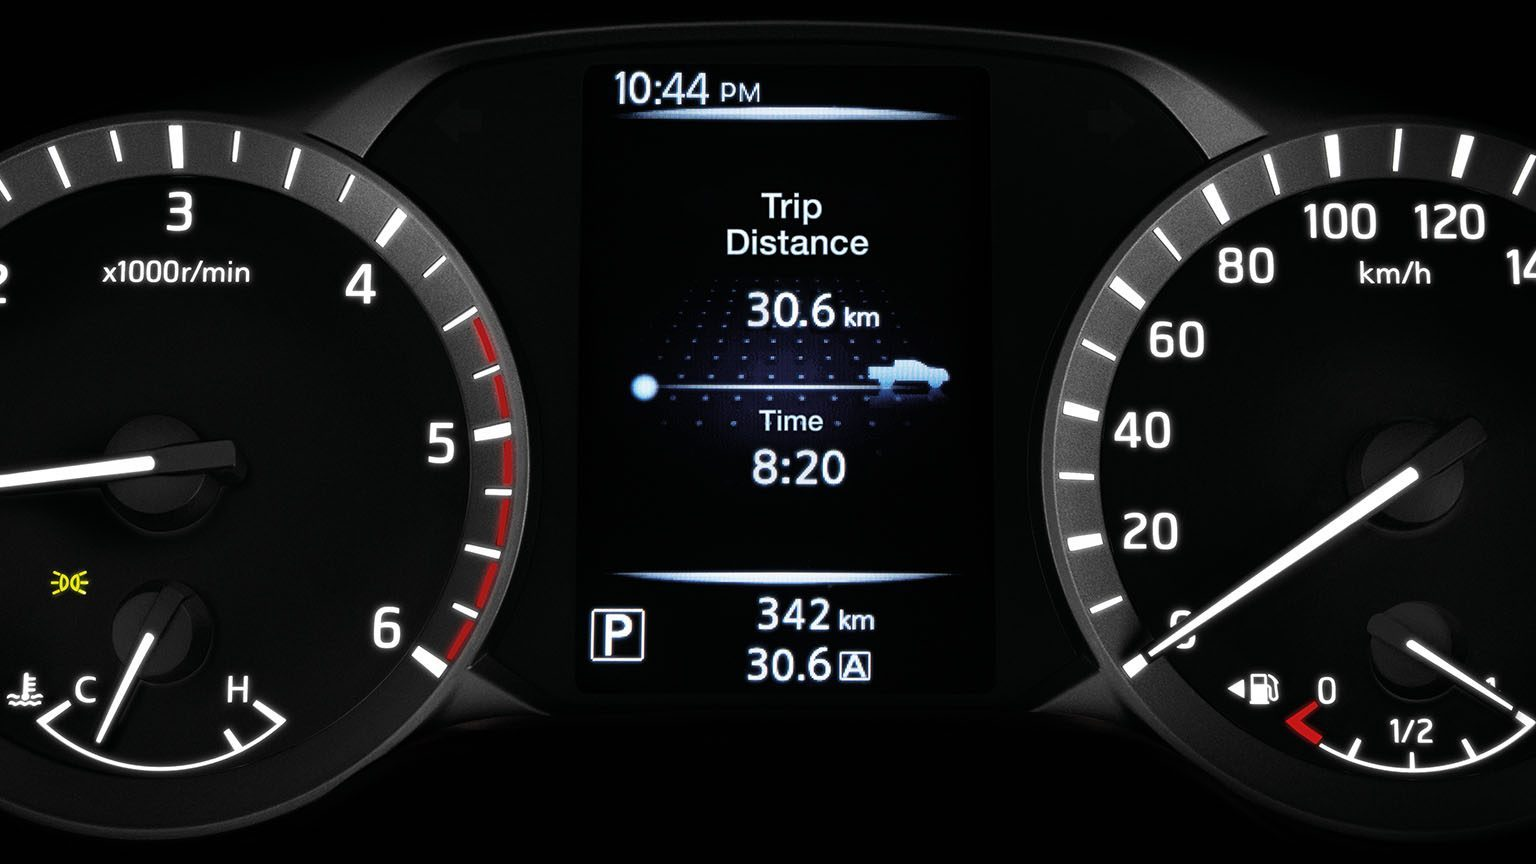 Trip Distance Display